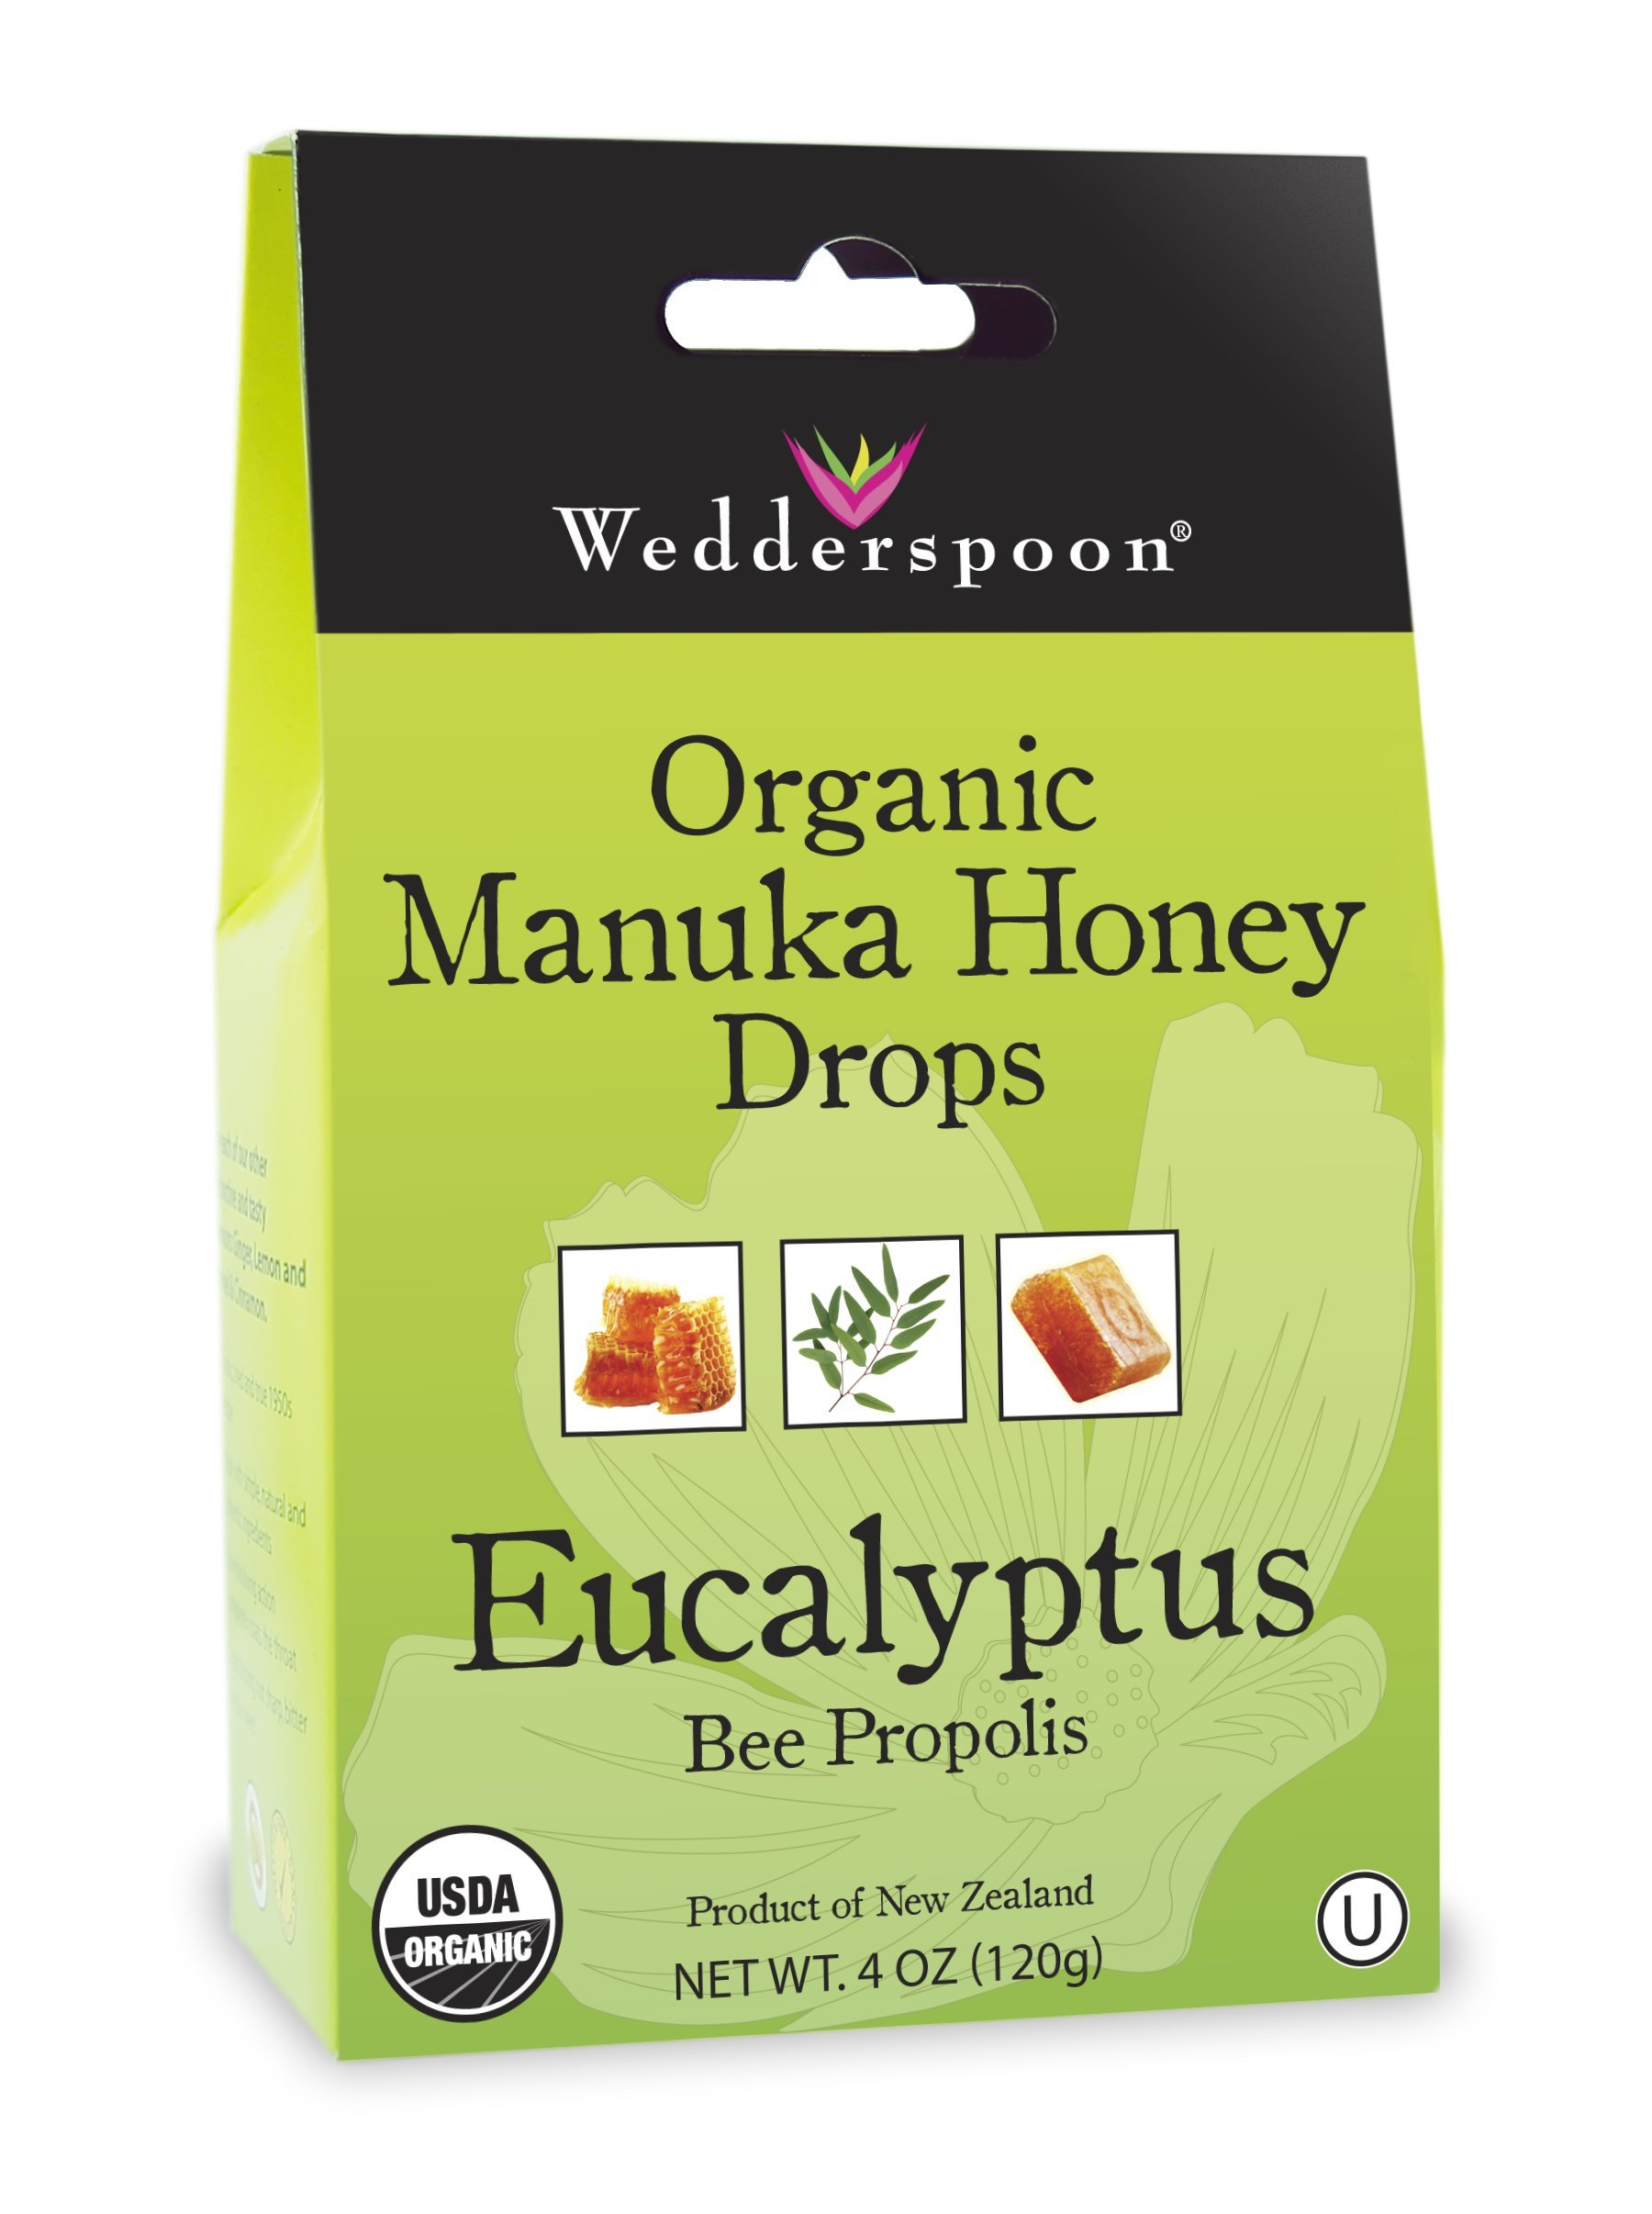 Wedderspoon Organic Manuka Honey Drops, Eucalyptus + Bee Propolis, 4.0 Oz, Unpasteurized, Genuine New Zealand Honey, Perfect Remedy For Dry Throats